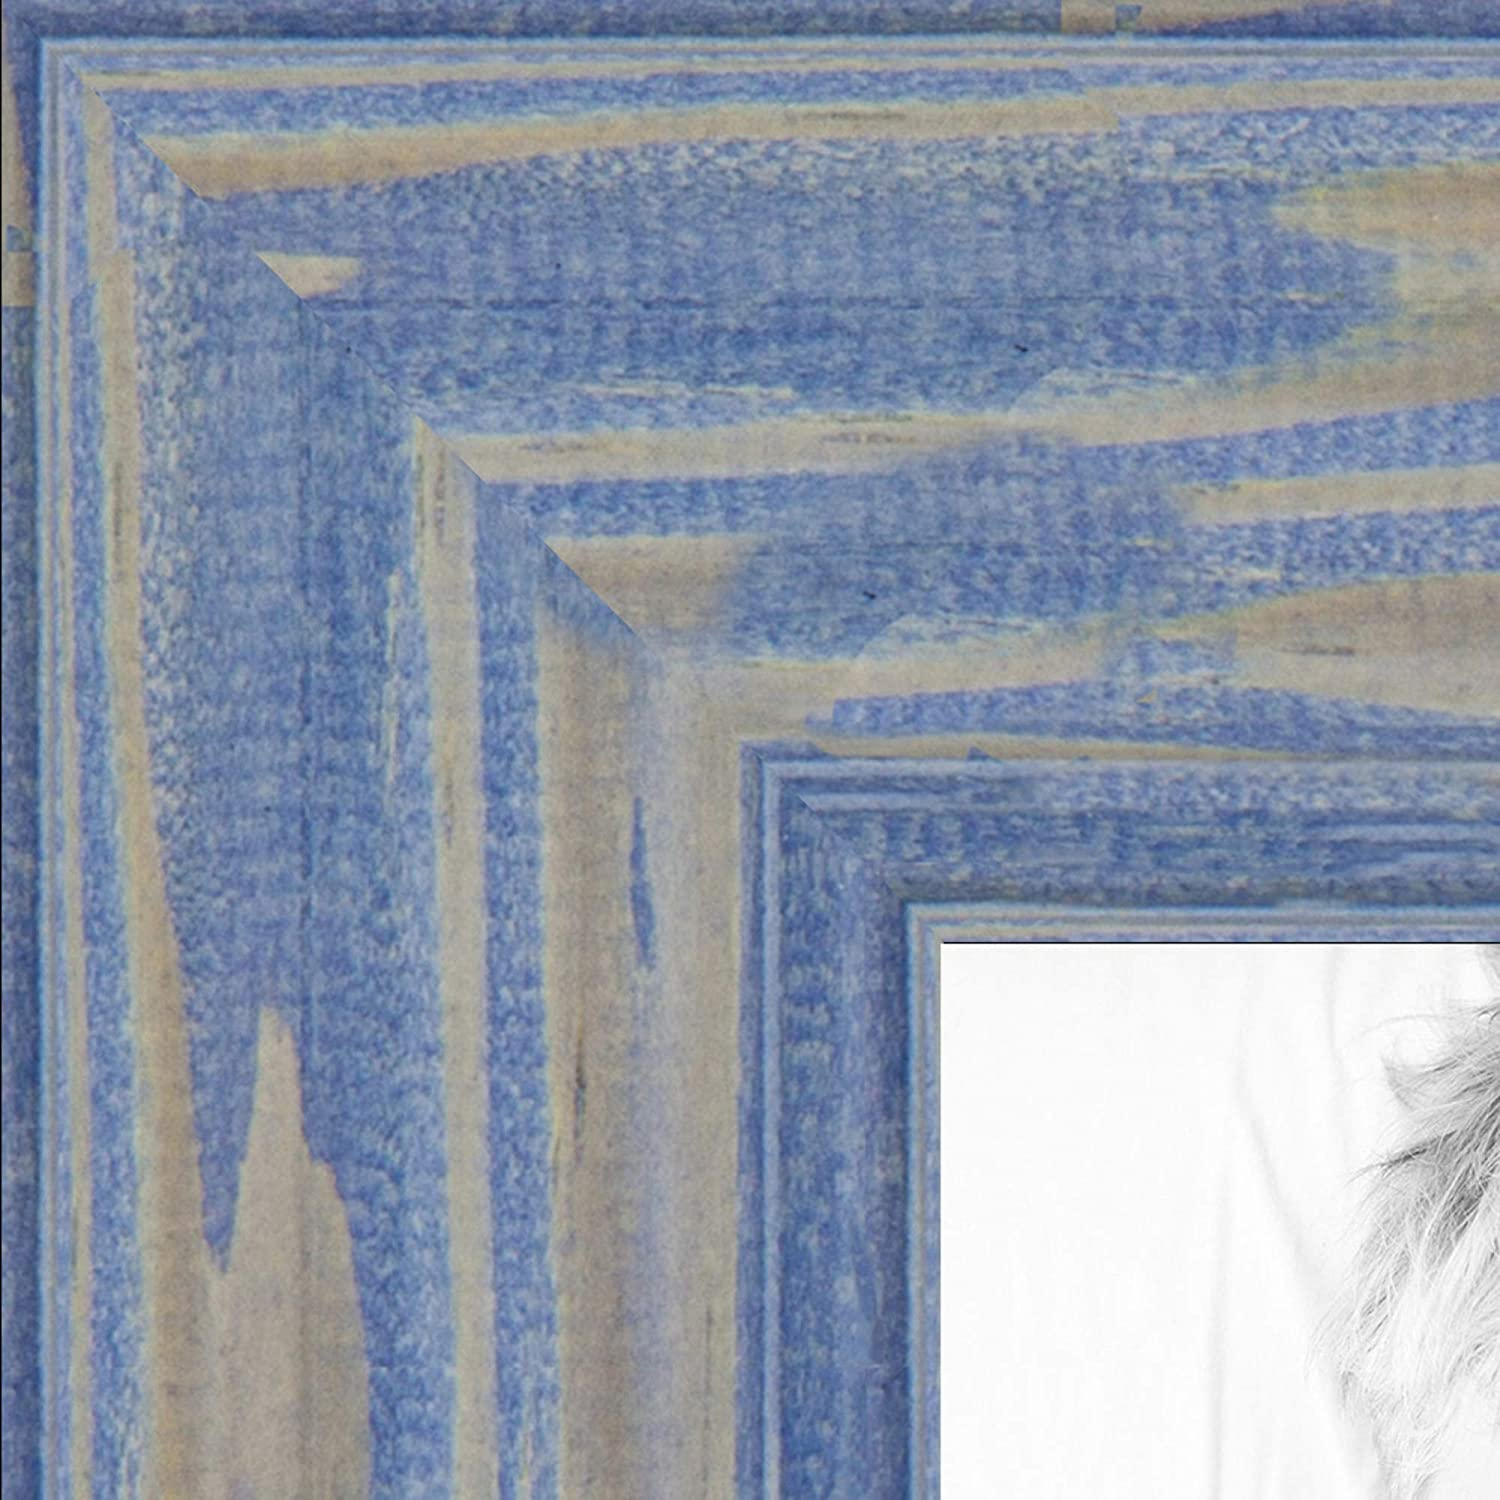 """ArtToFrames 24x24 Inch Blue Picture Frame, This 1.5"""" Custom Wood Poster Frame is Deep Periwinkle Barnwood Style Frame, for Your Art or Photos, WOM0066-56673-YBLU-24x24"""